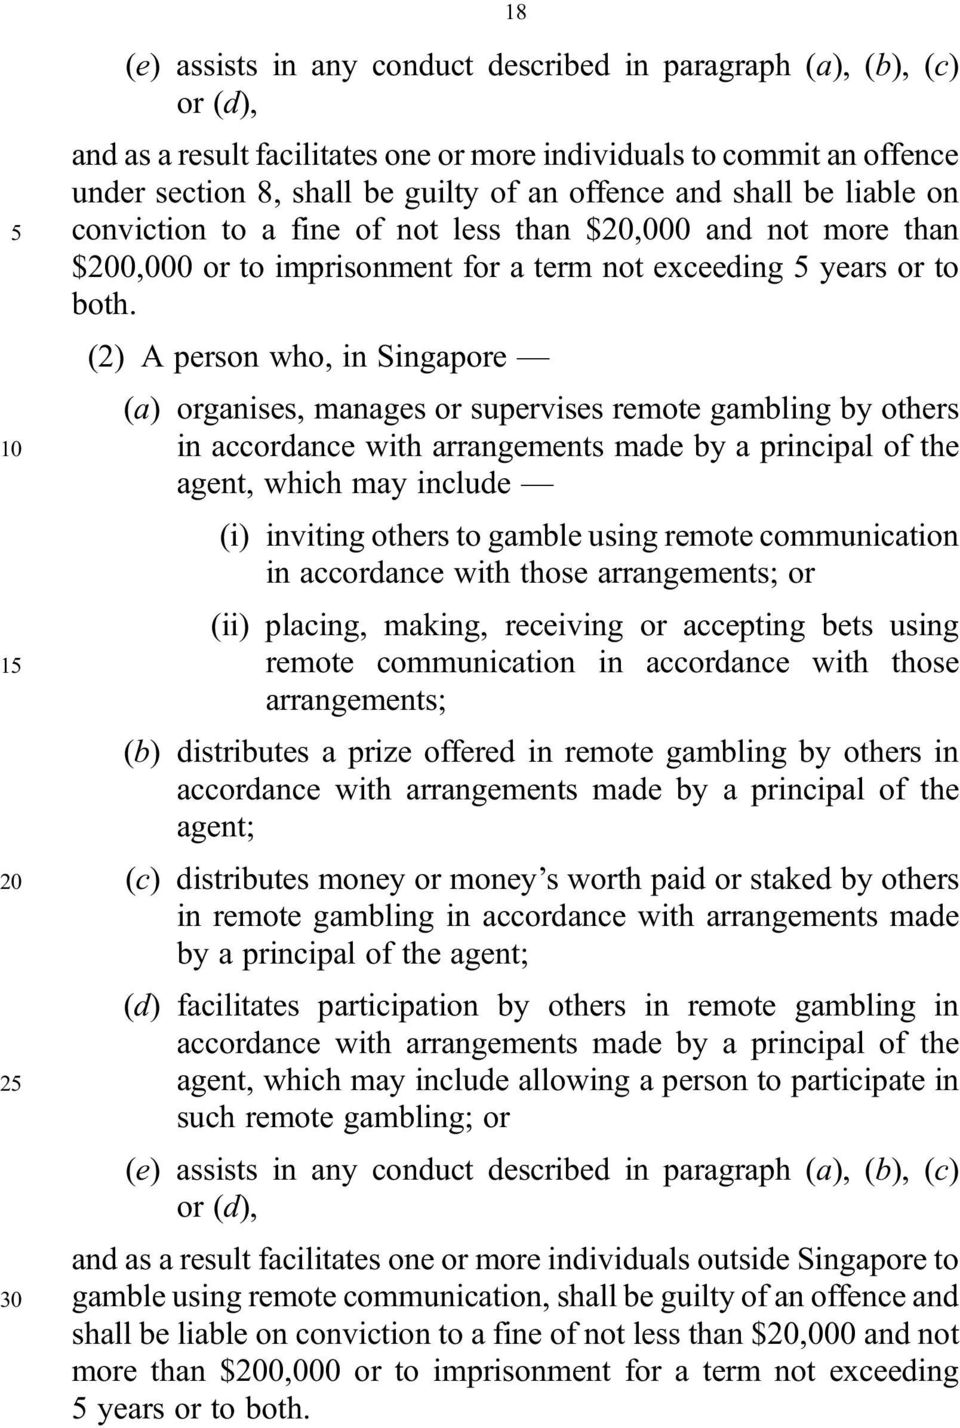 (2) A person who, in Singapore (a) organises, manages or supervises remote gambling by others 10 in accordance with arrangements made by a principal of the agent, which may include (i) inviting